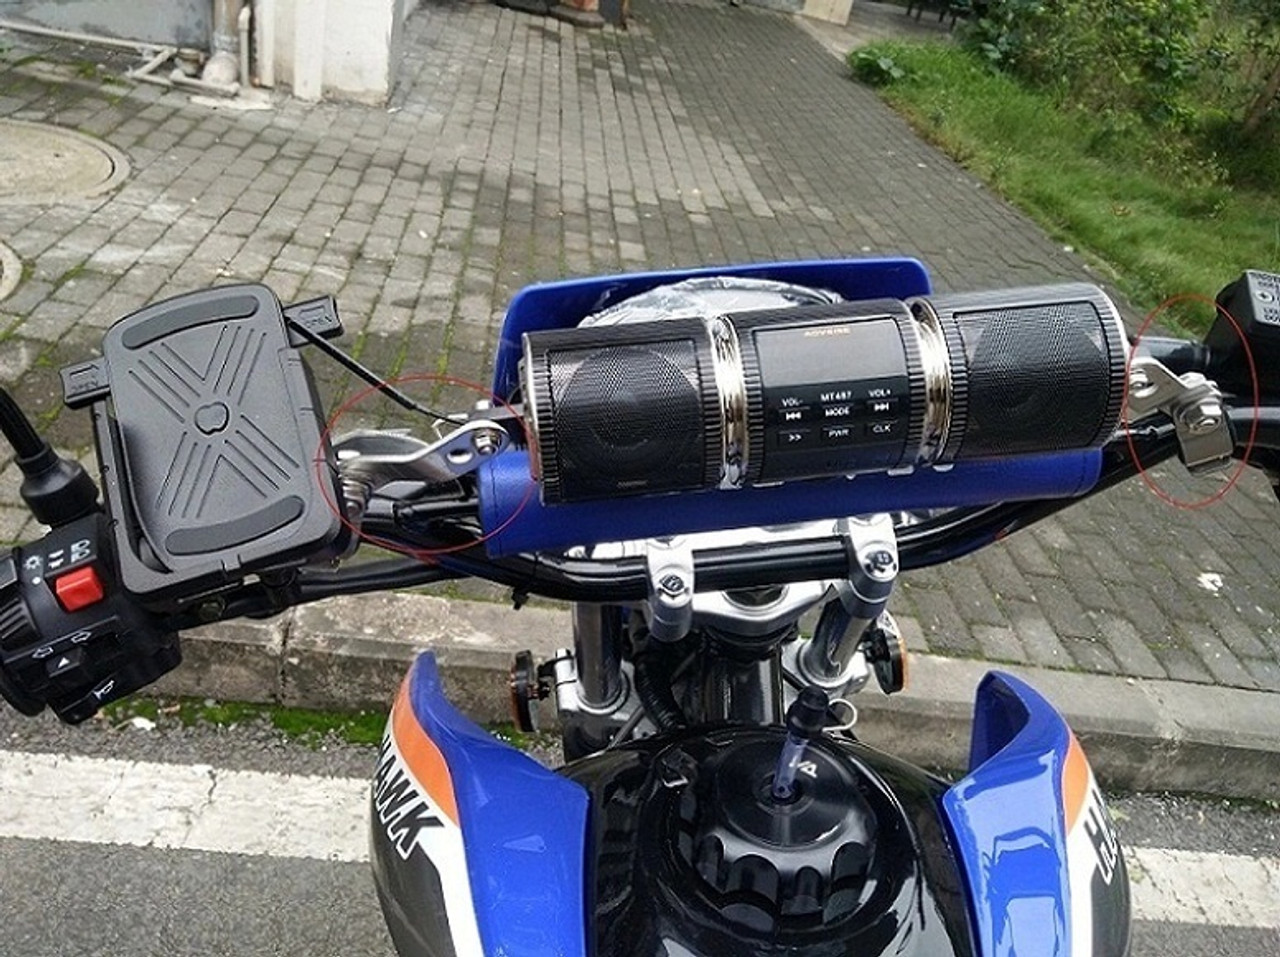 New Hawk 250 DLX With Bluetooth Speakers and Phone Holder - Fully Assembled and Tested